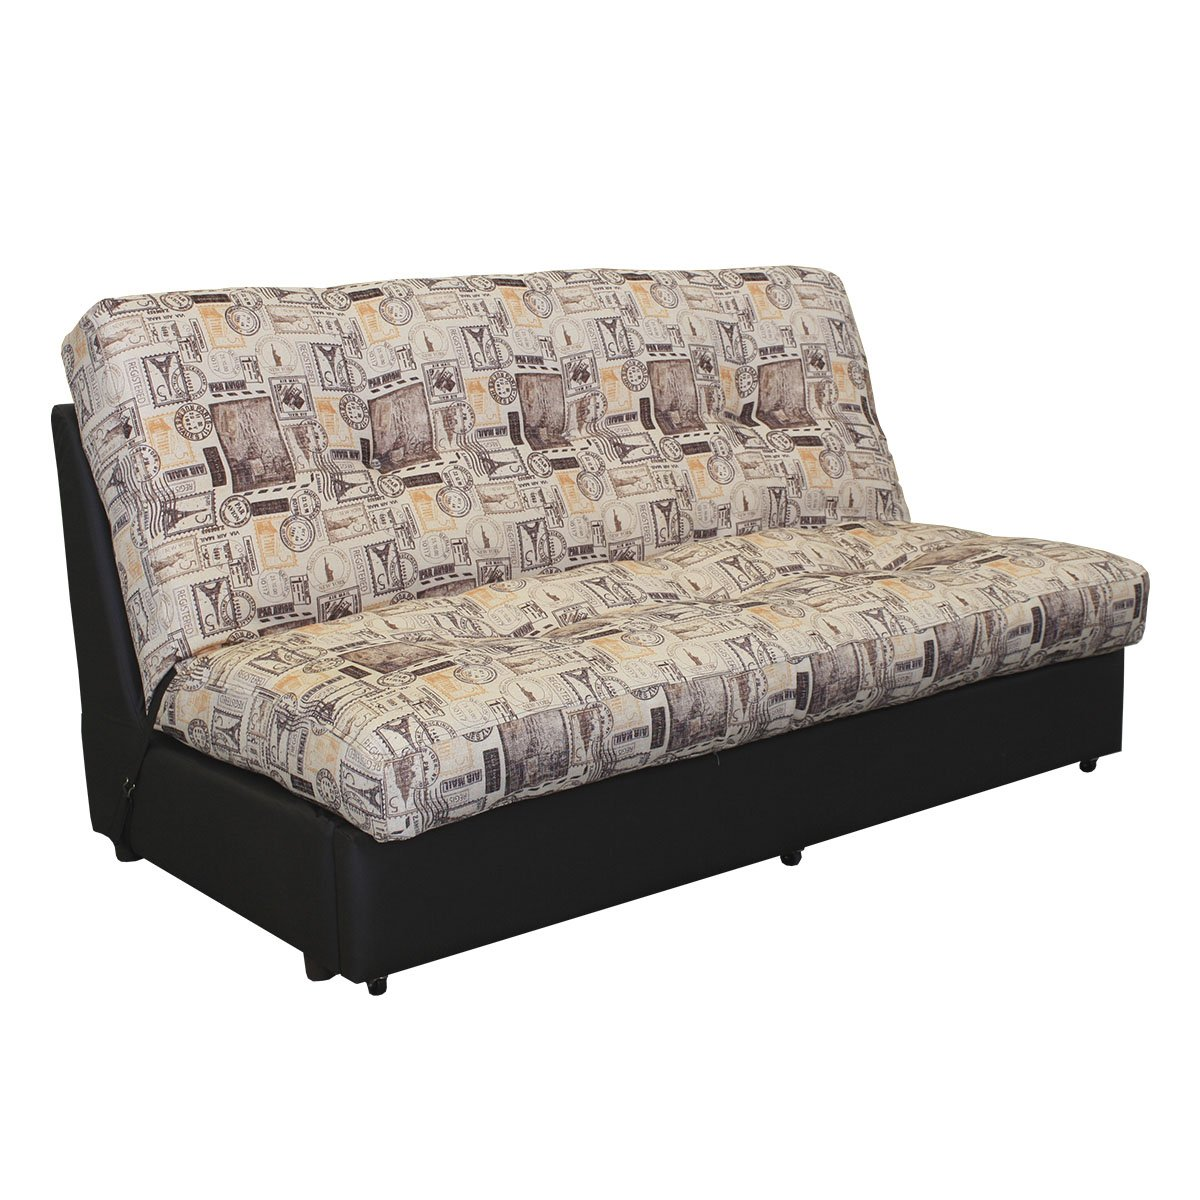 Sofa cama sofas camas sofa brownsvilleclaimhelp thesofa for Fabrica sofa cama 1 plaza